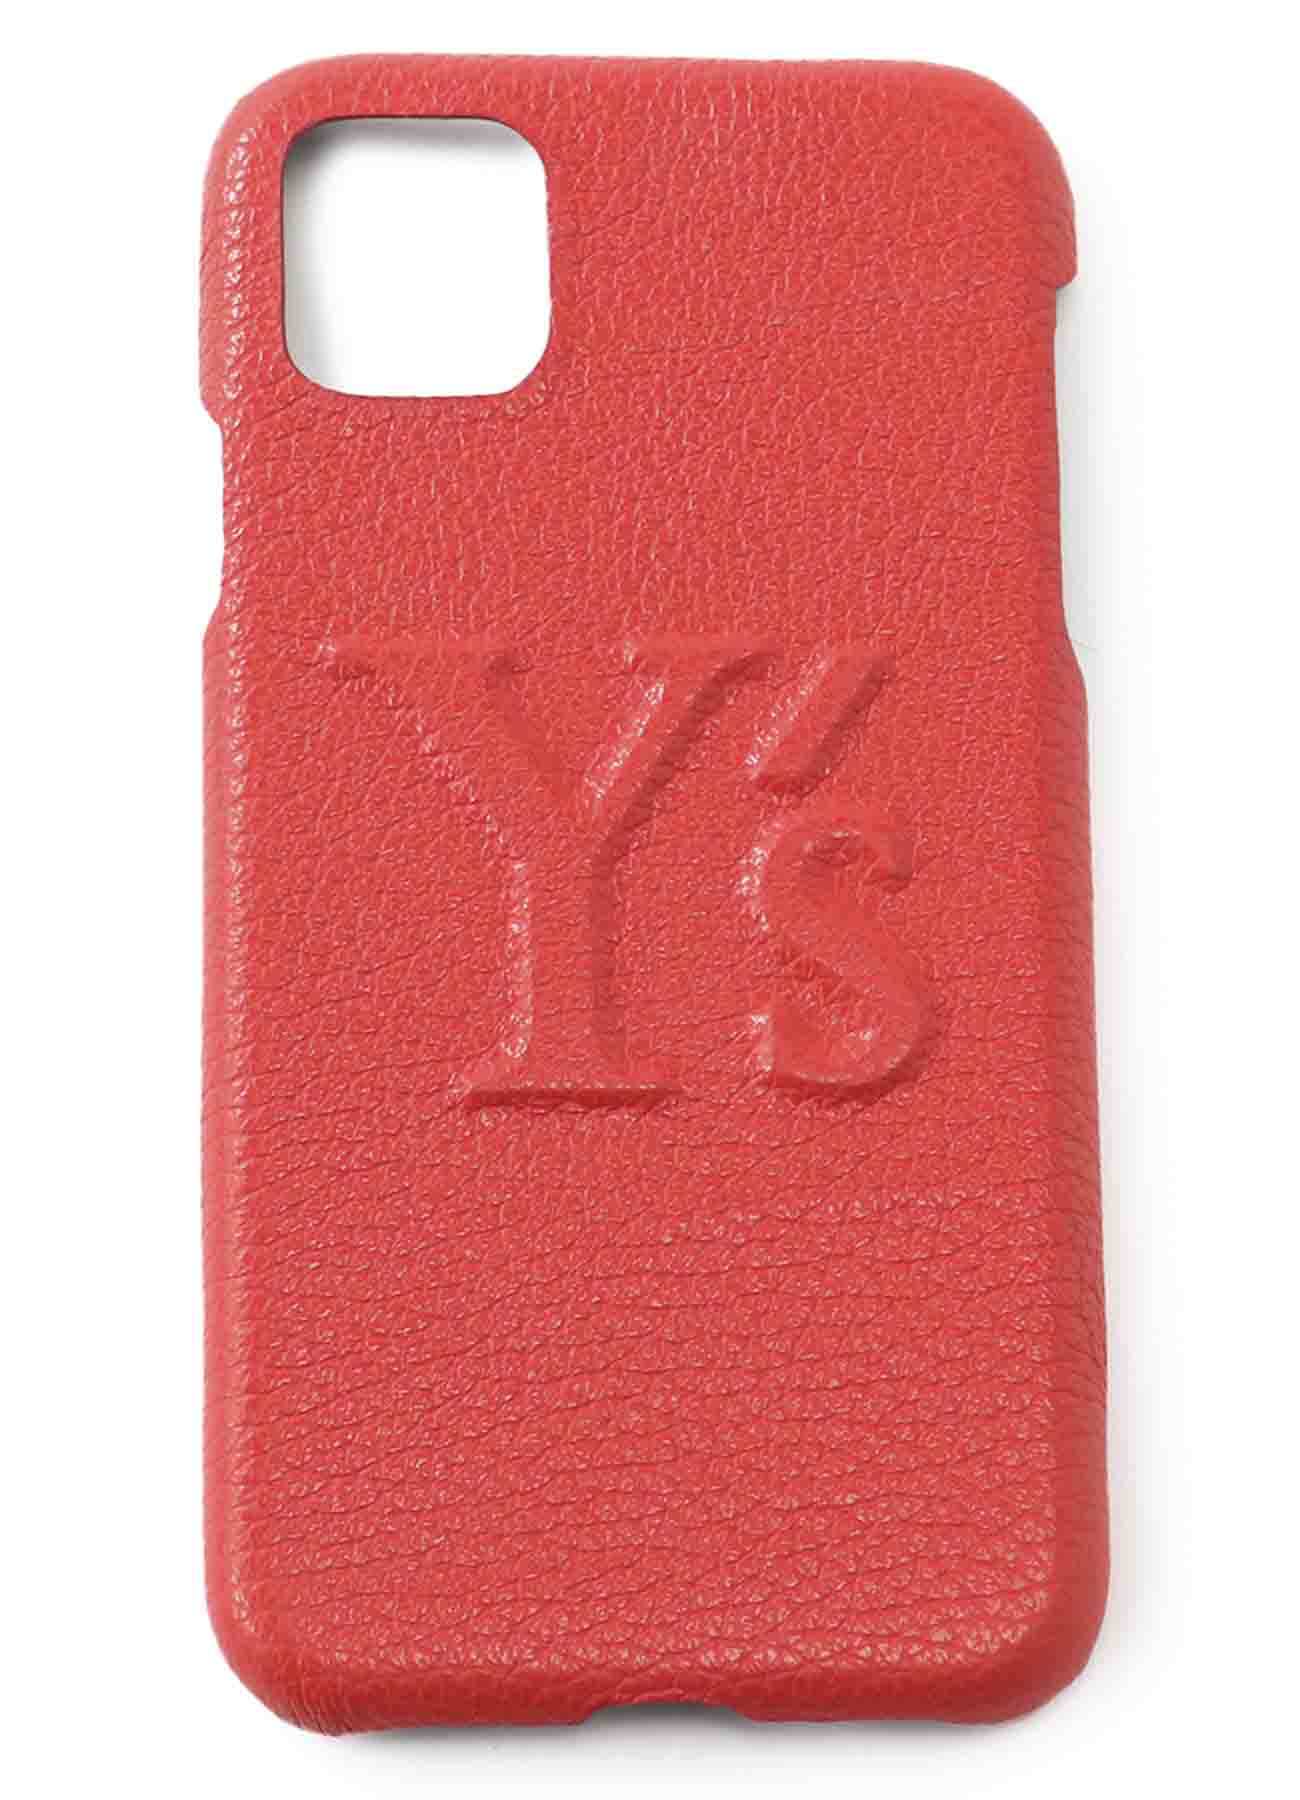 COLOR SHRINK EMBOSS iPhone CASE